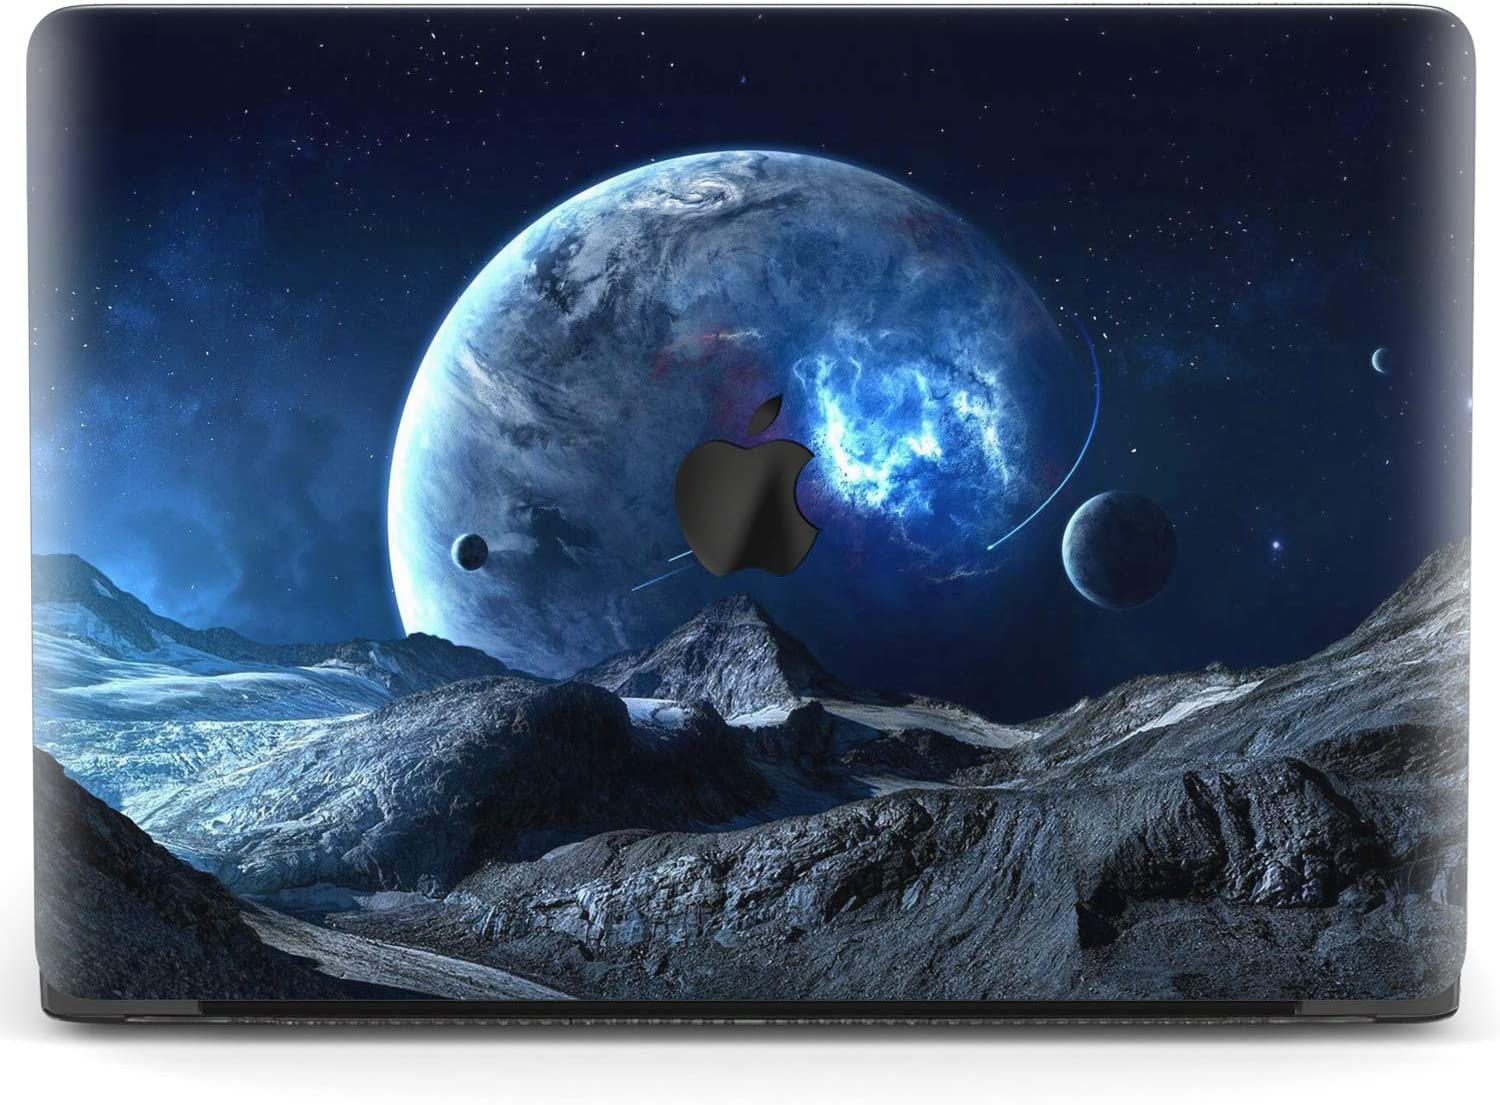 Mertak Hard Case for Apple MacBook Pro 16 Air 13 inch Mac 15 Retina 12 11 2020 2019 2018 2017 Plastic Protective Touch Bar Space Landscape Cover Planet Design Shell Universe Fantasy Print Sci-Fi